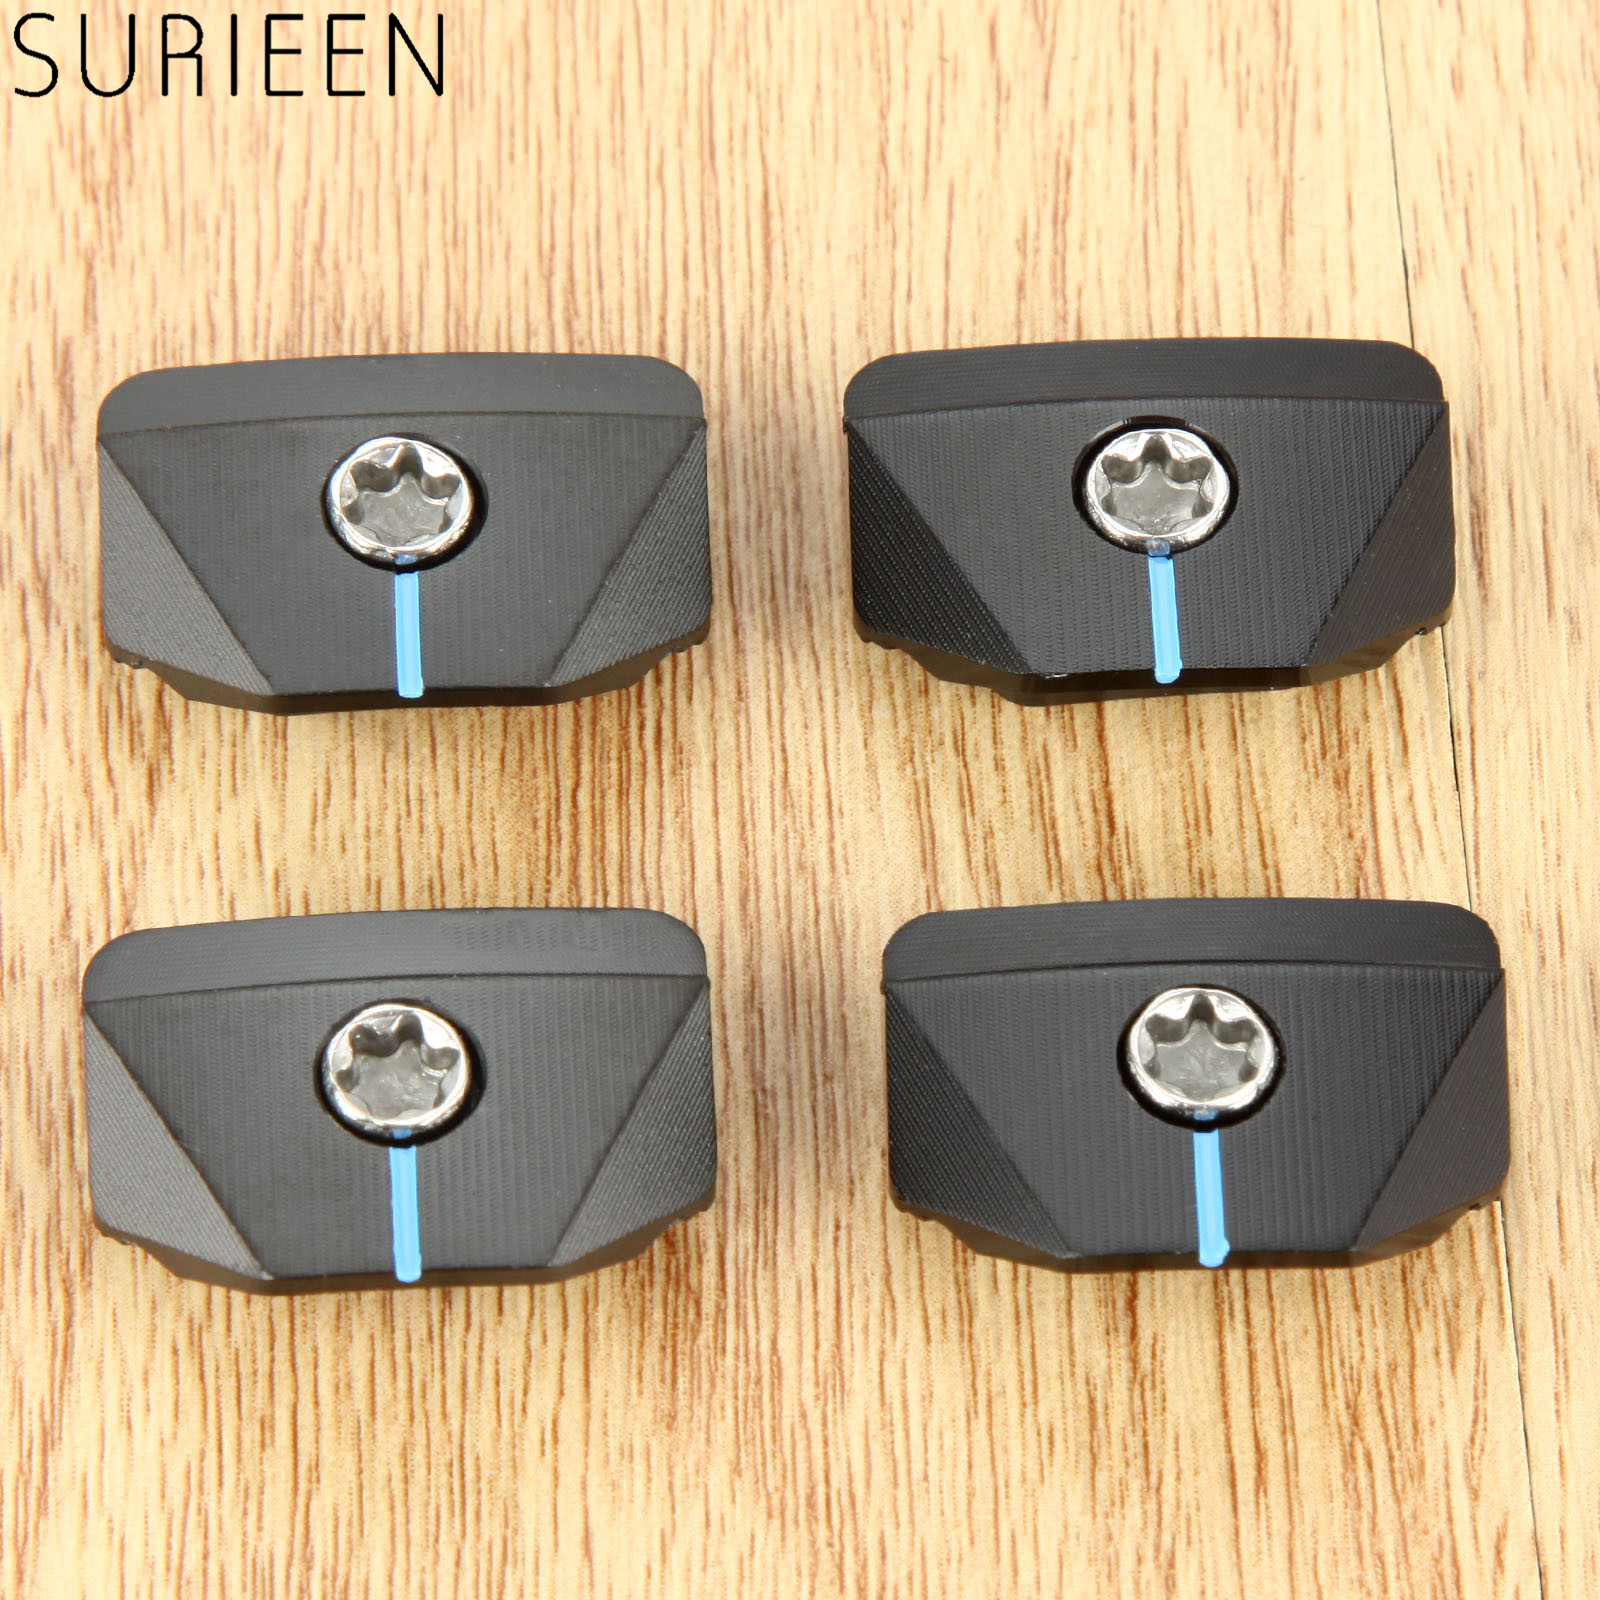 SURIEEN 1pc Golf Weight Screw Replacement Fit For Taylormade M3 Driver 6g / 10.5g / 14.5g / 18.5g Golf Club Accessories